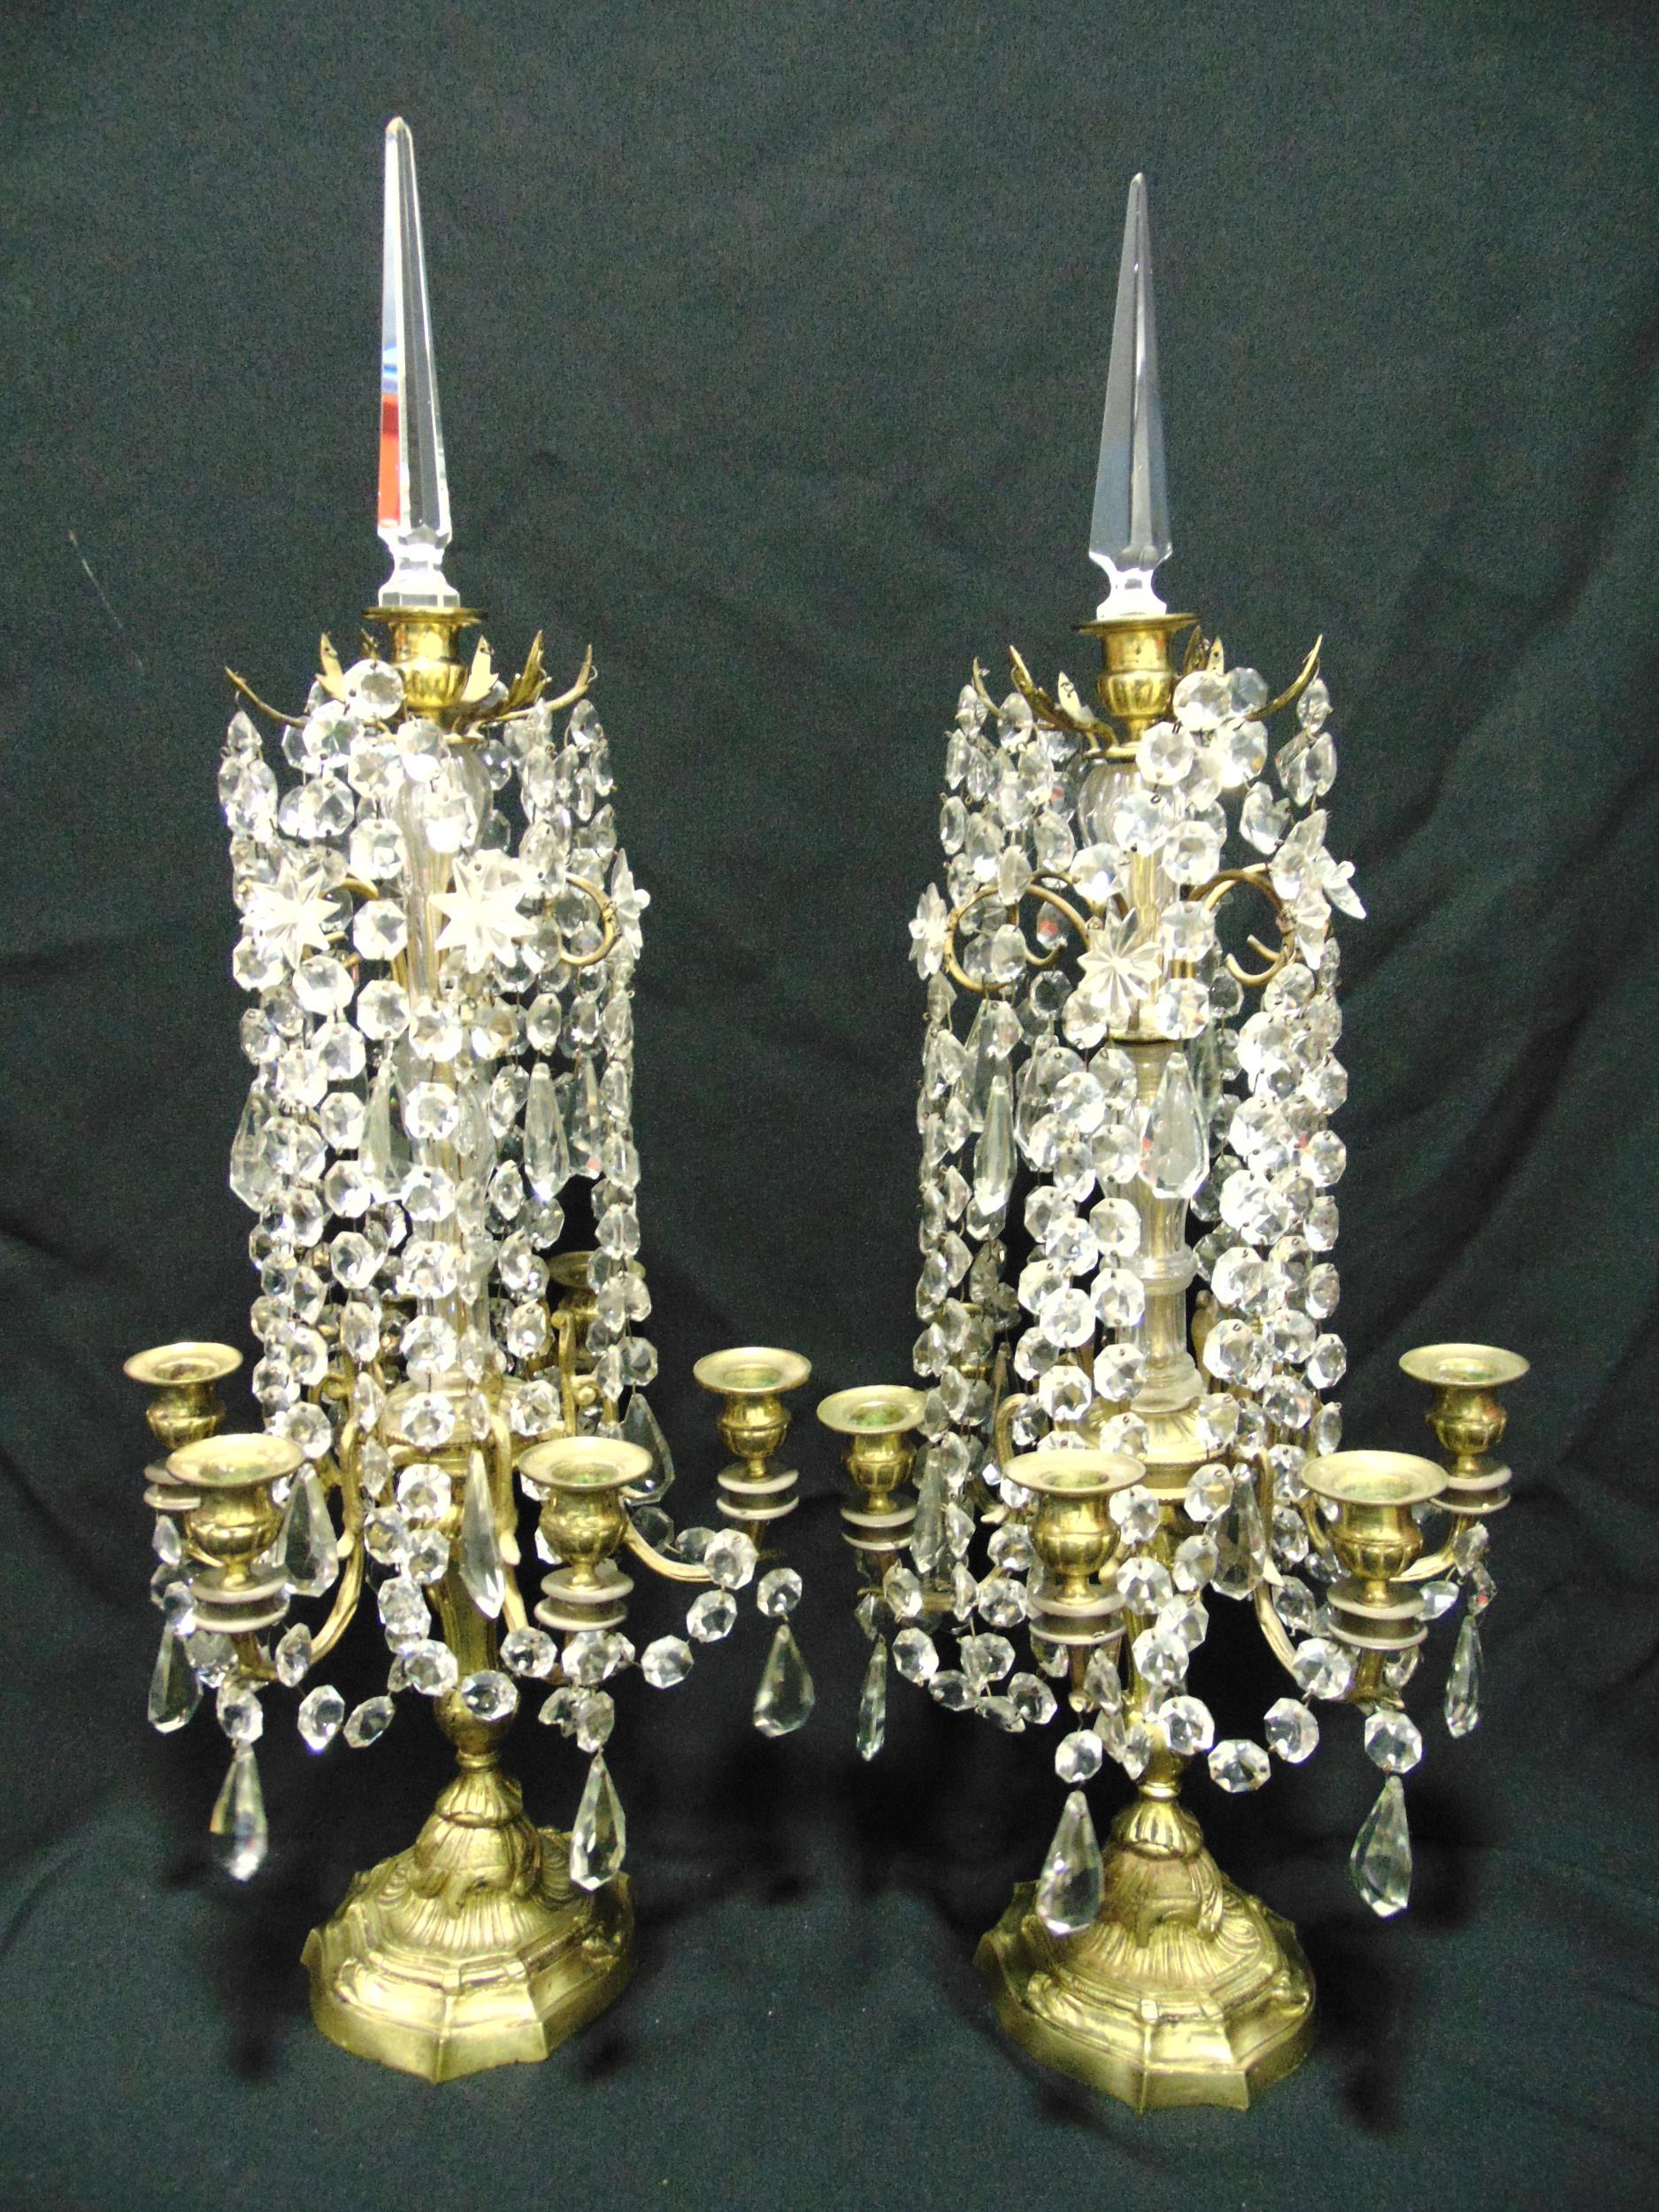 A pair of six light gilded metal and crystal Louis XV style candle girandoles, the naturalistic